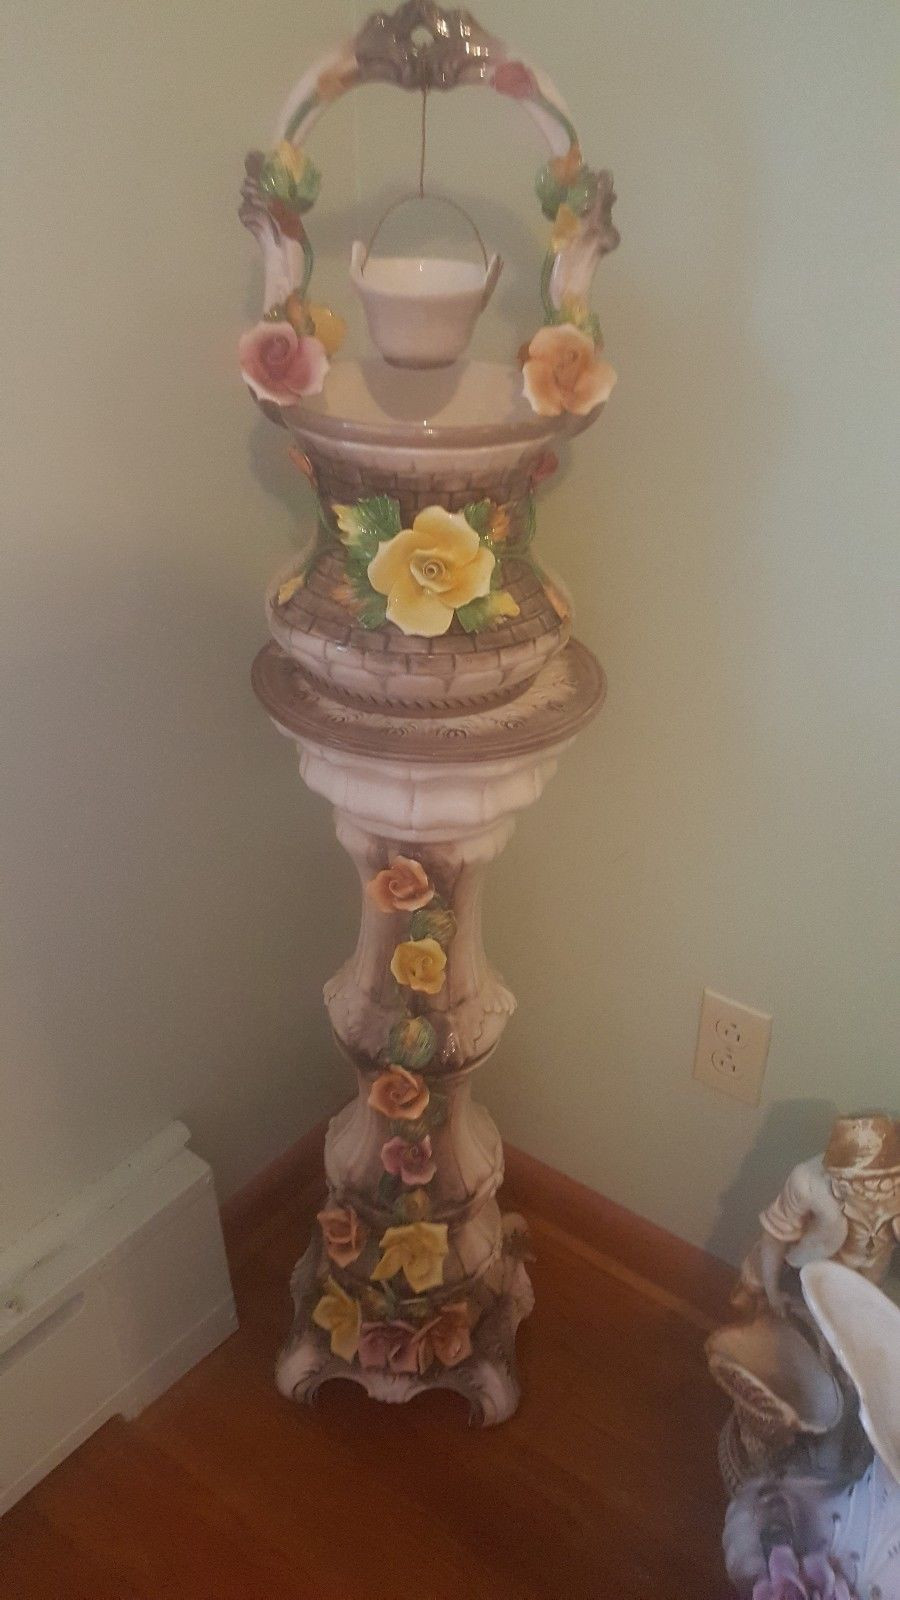 Vintage Capodimonte Vase Of Xl 1949 Vintage Capodimonte Porcelain Wishing Well Pedestal Stand Pertaining to Xl 1949 Vintage Capodimonte Porcelain Wishing Well Pedestal Stand and Pitcher 1 Of 11 See More